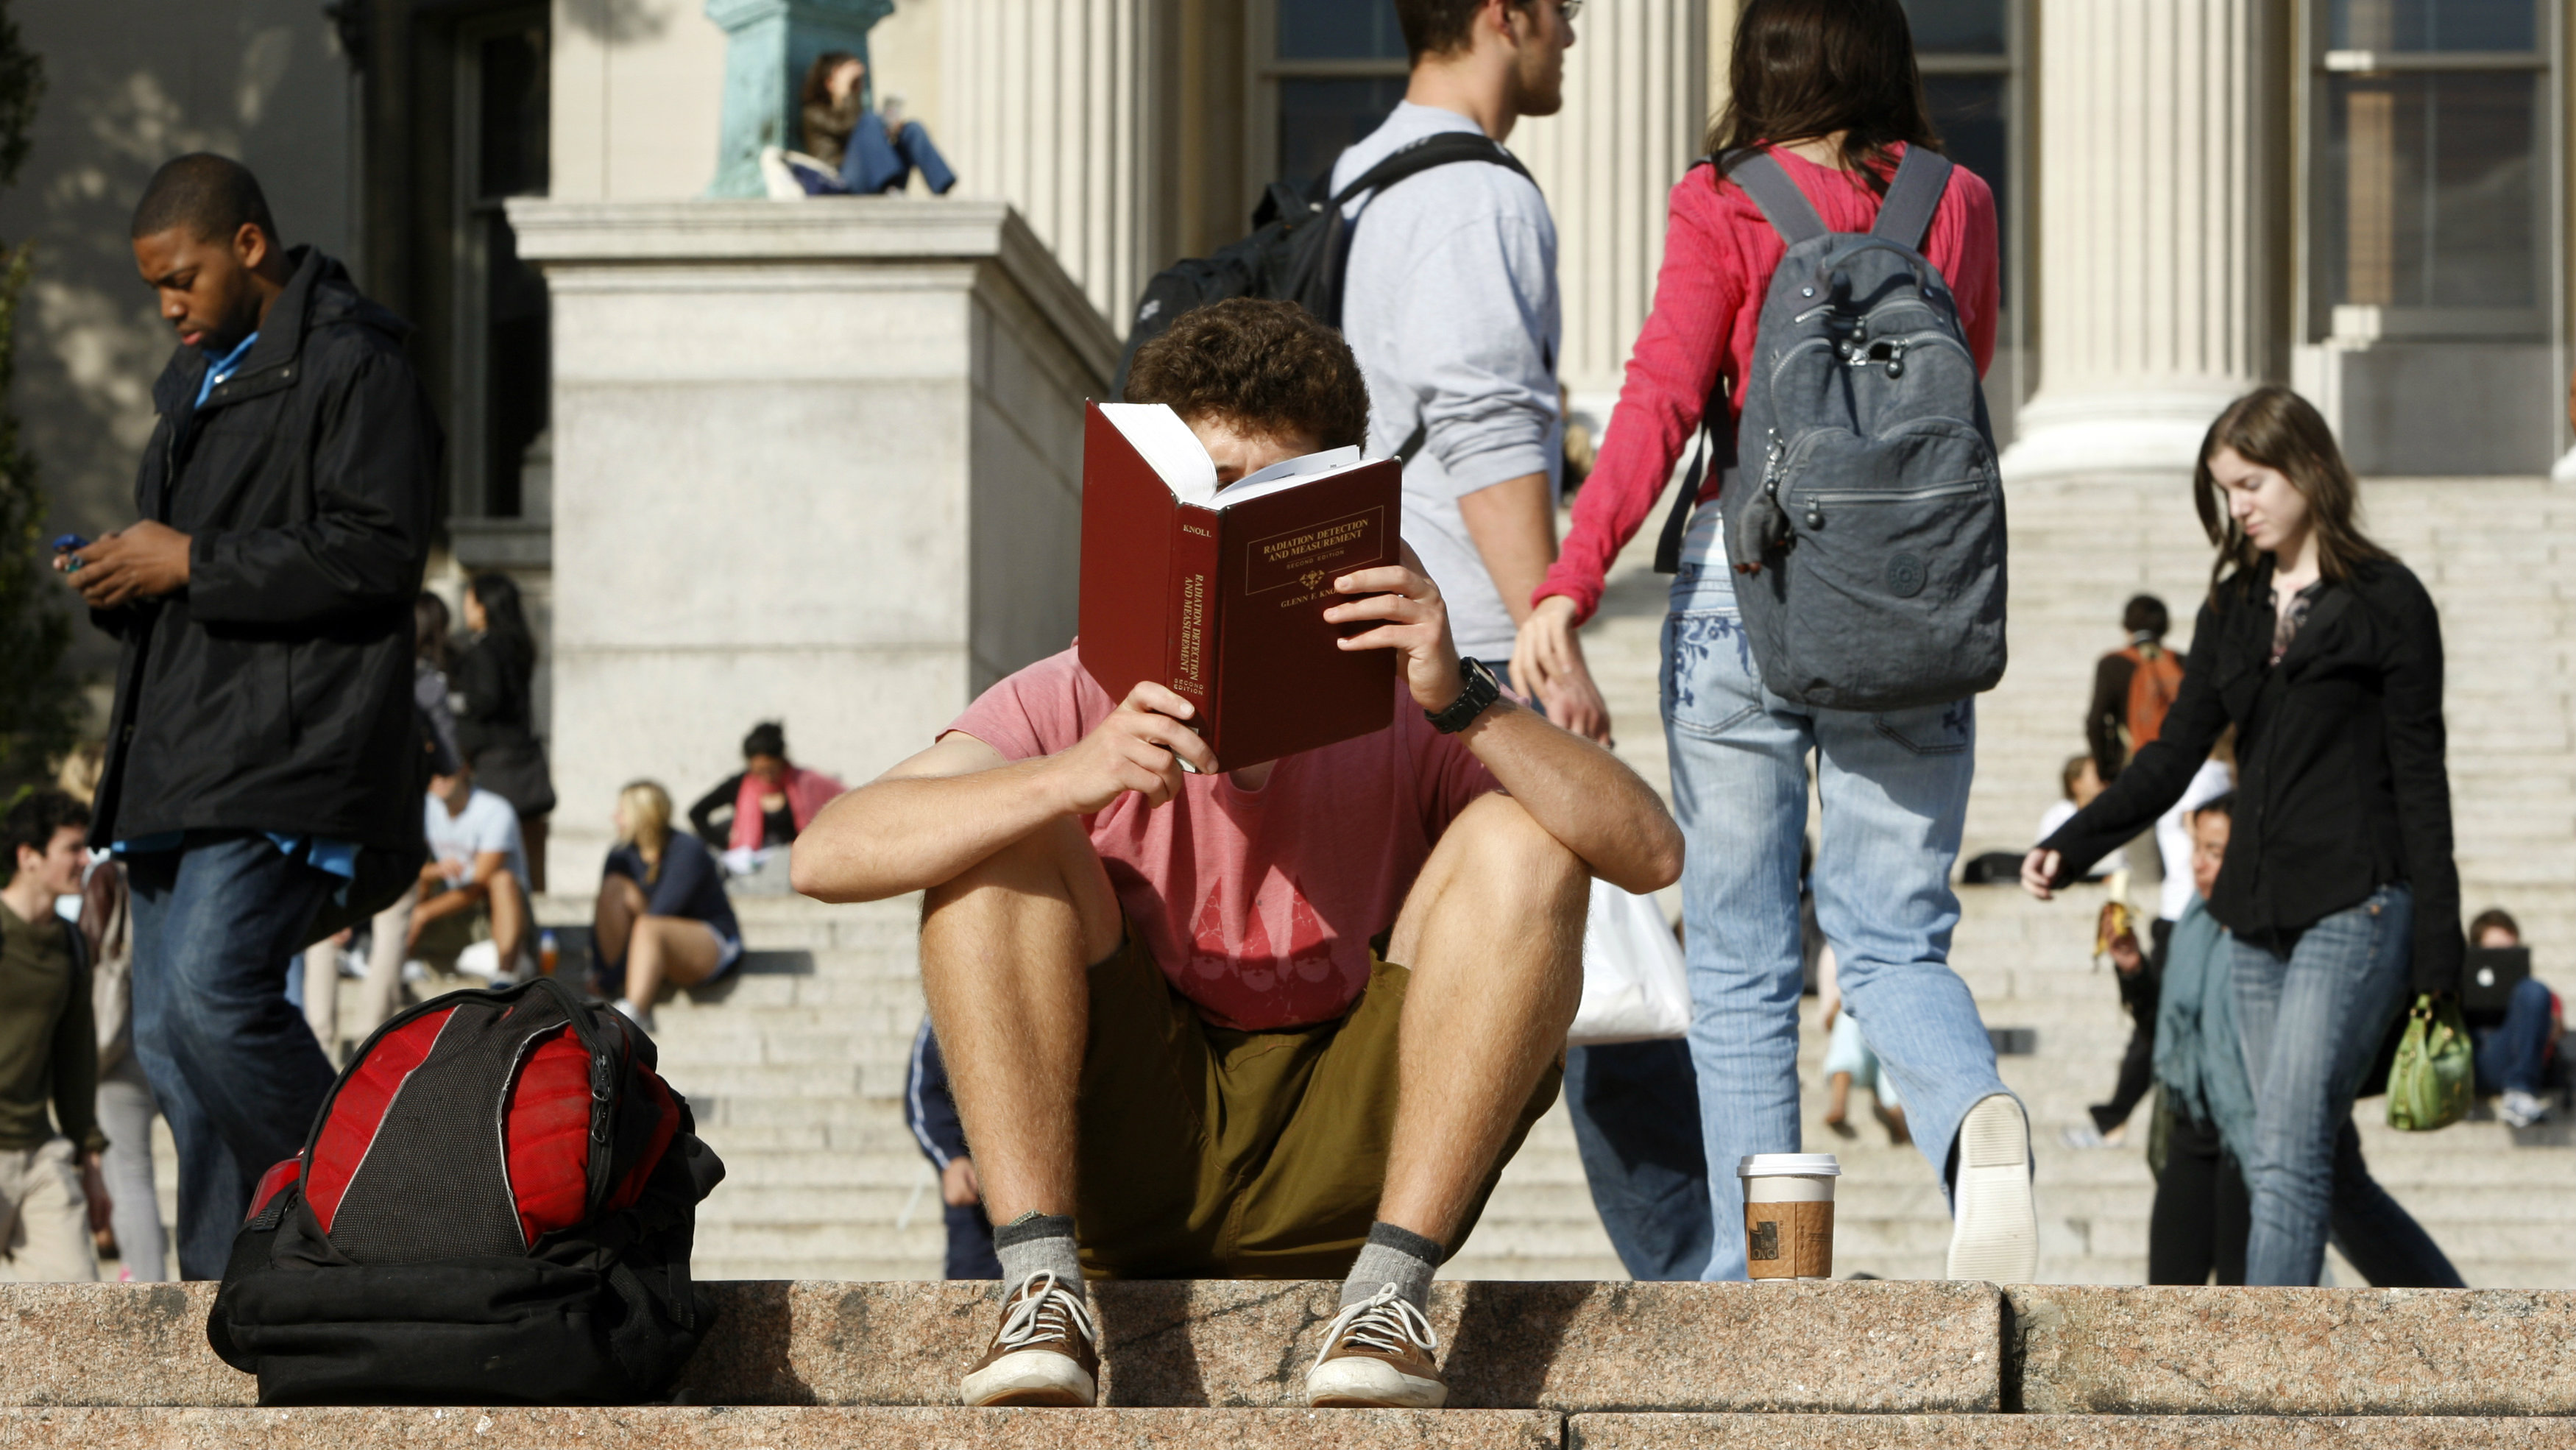 A student reads on the campus of Columbia University in New York, October 5, 2009. REUTERS/Mike Segar